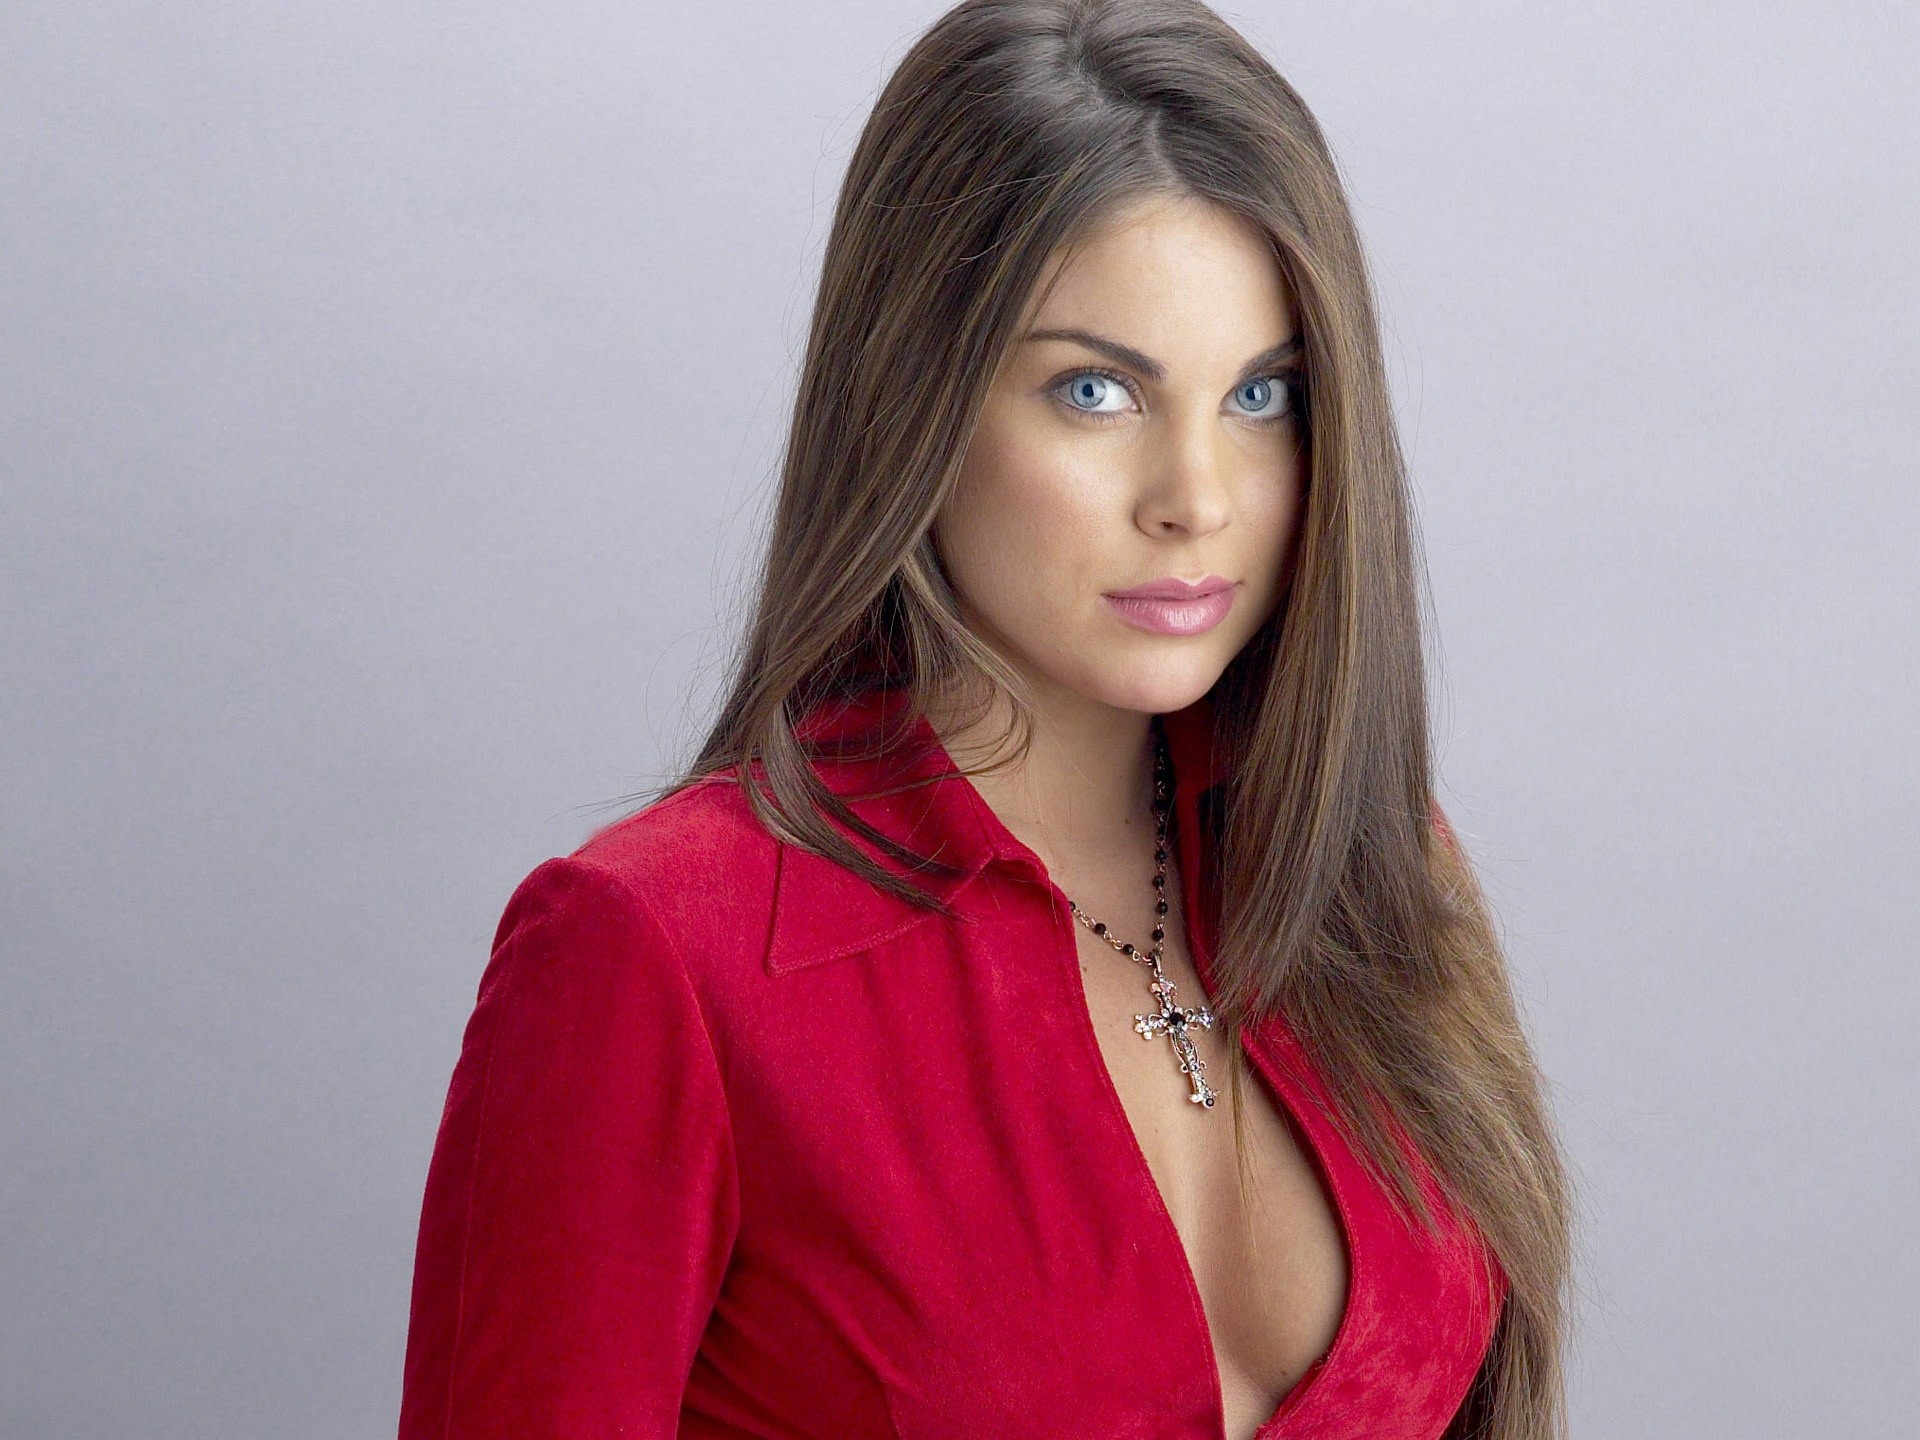 People 1920x1440 women Nadia Bjorlin brunette blue eyes actress singer